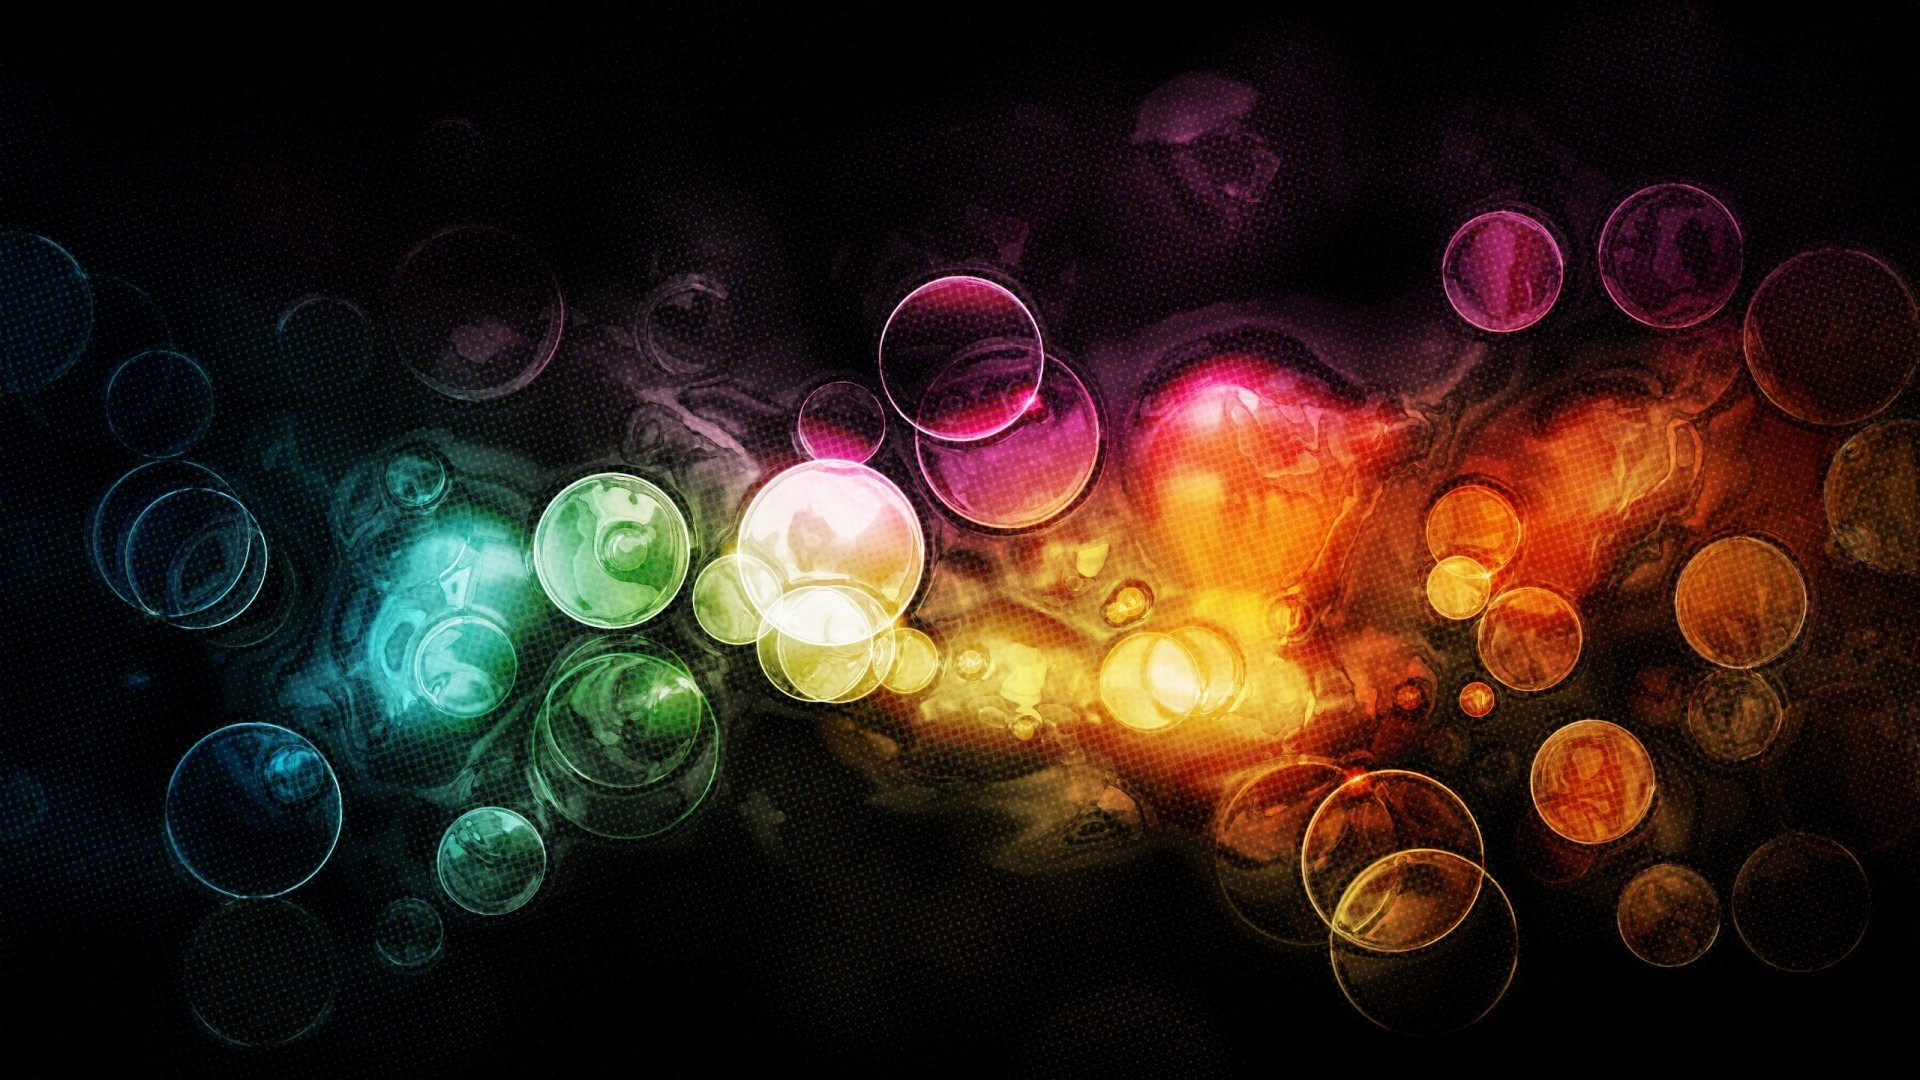 Abstract HD wallpaper (14) – hebus.org – High Definition .